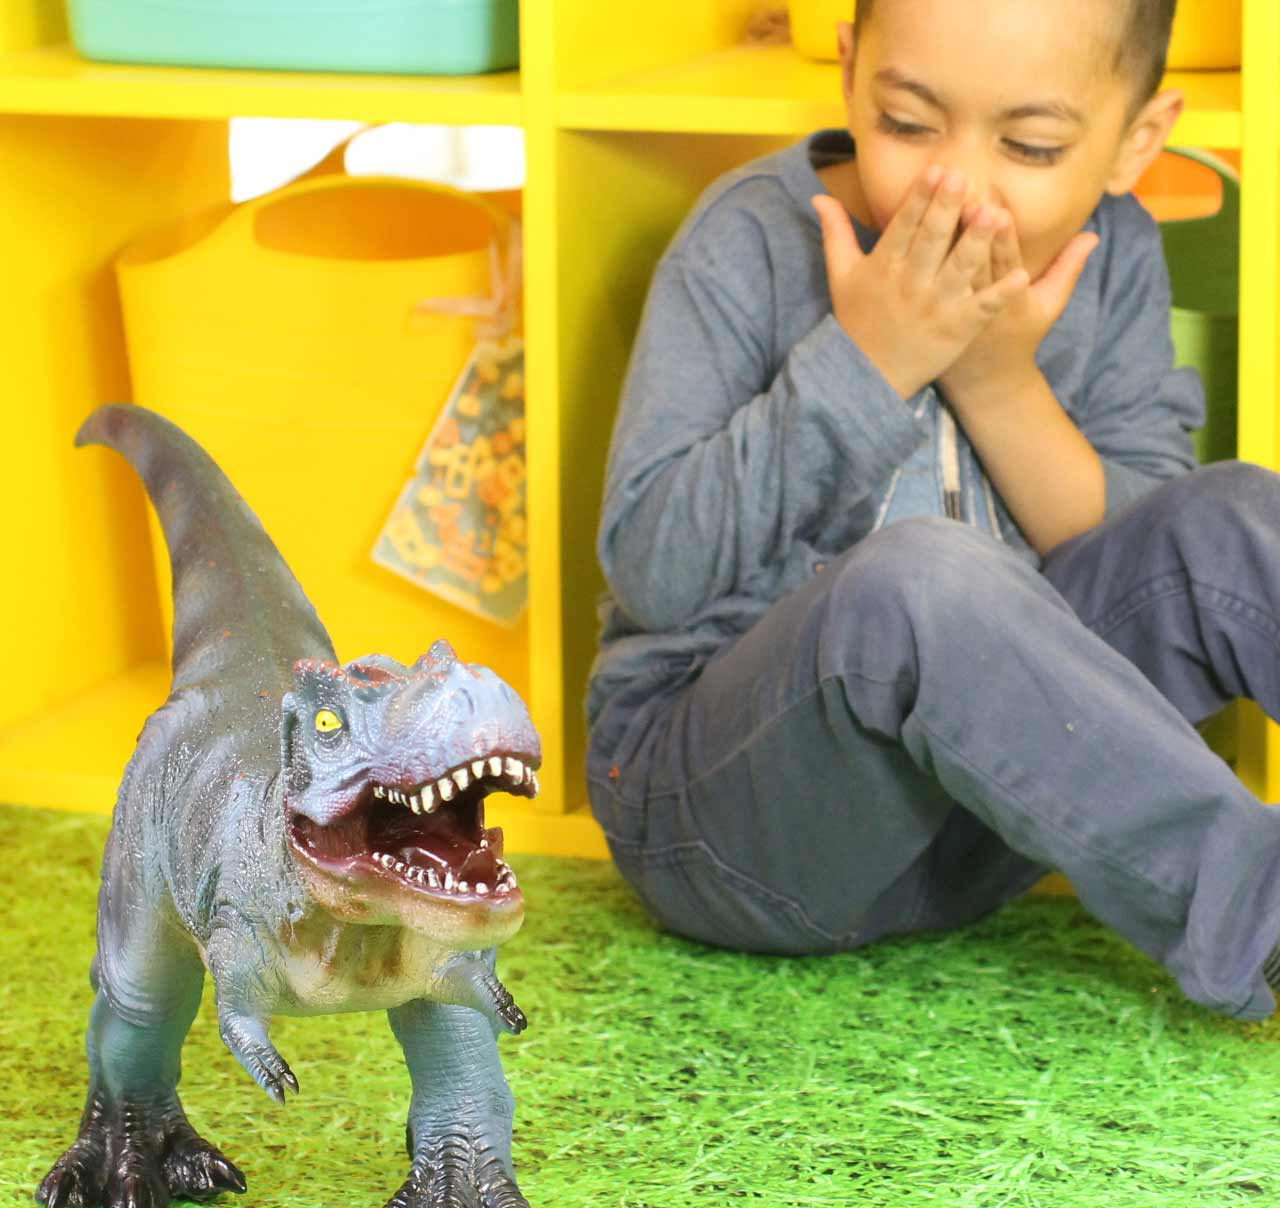 Developed for the early years, these Dino resources are attractive and stimulate curiosity in small world and the world we live in.